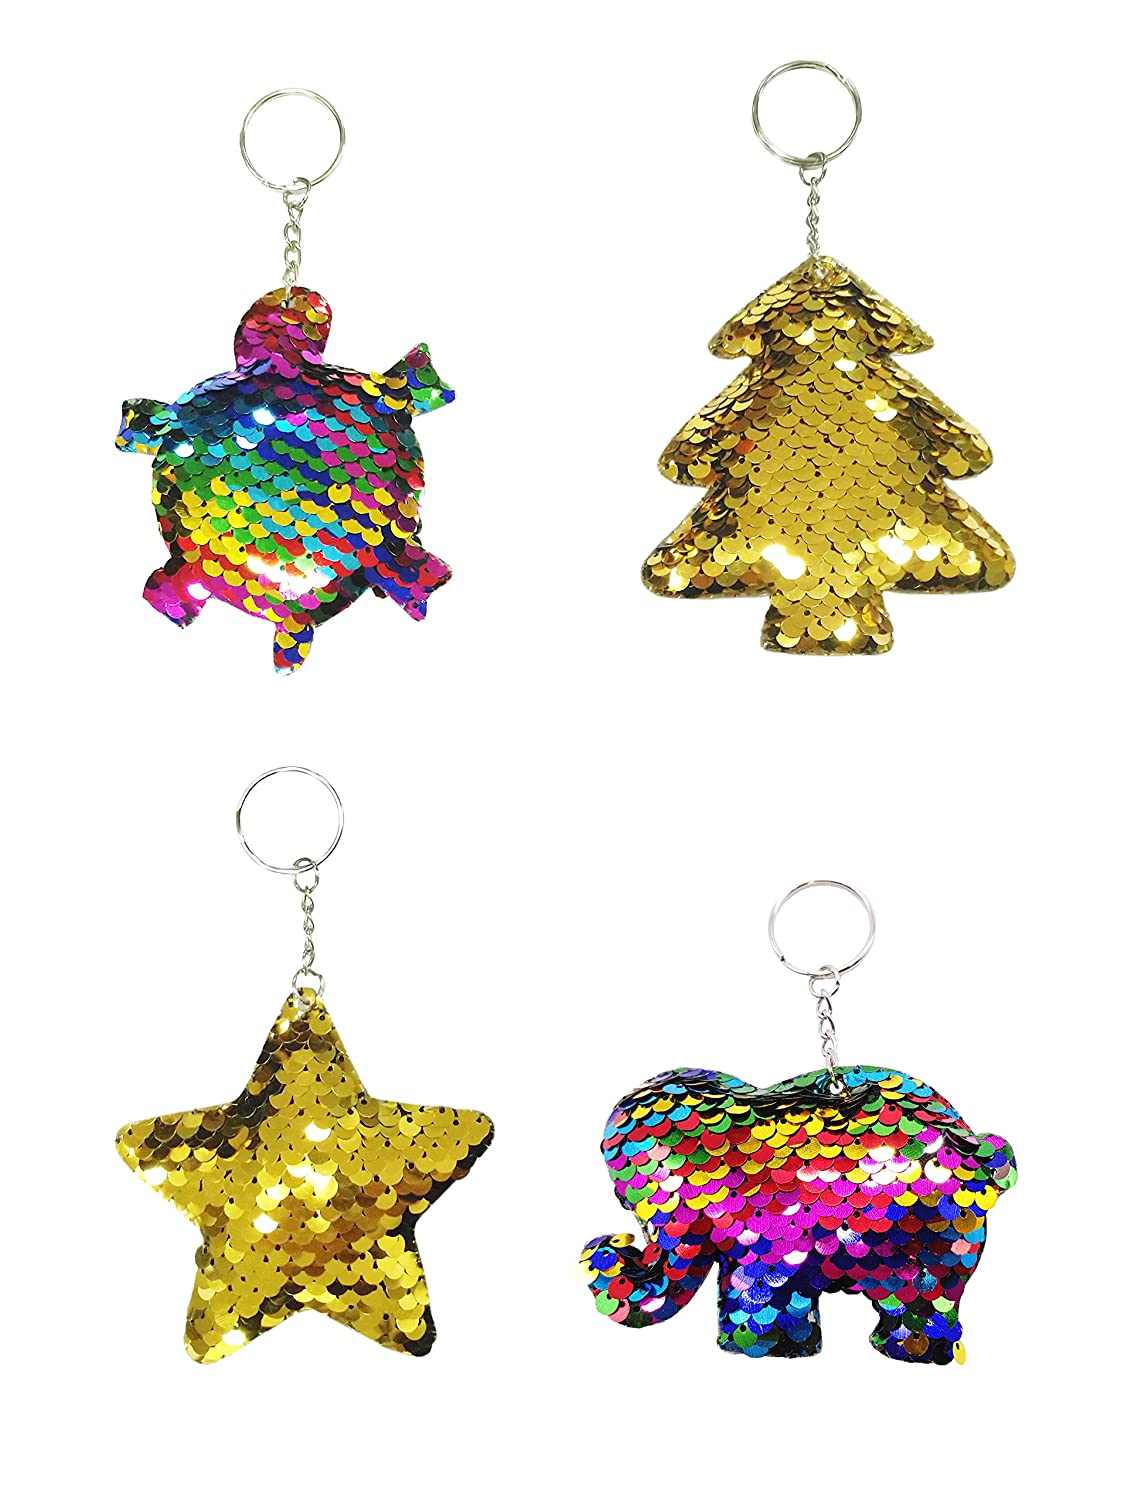 Neathouse 4 Pack Mermaid Sequin Keychain Sparkling Keychain, Keychain Decorations,Novelty Keychain for Kids Party Favors